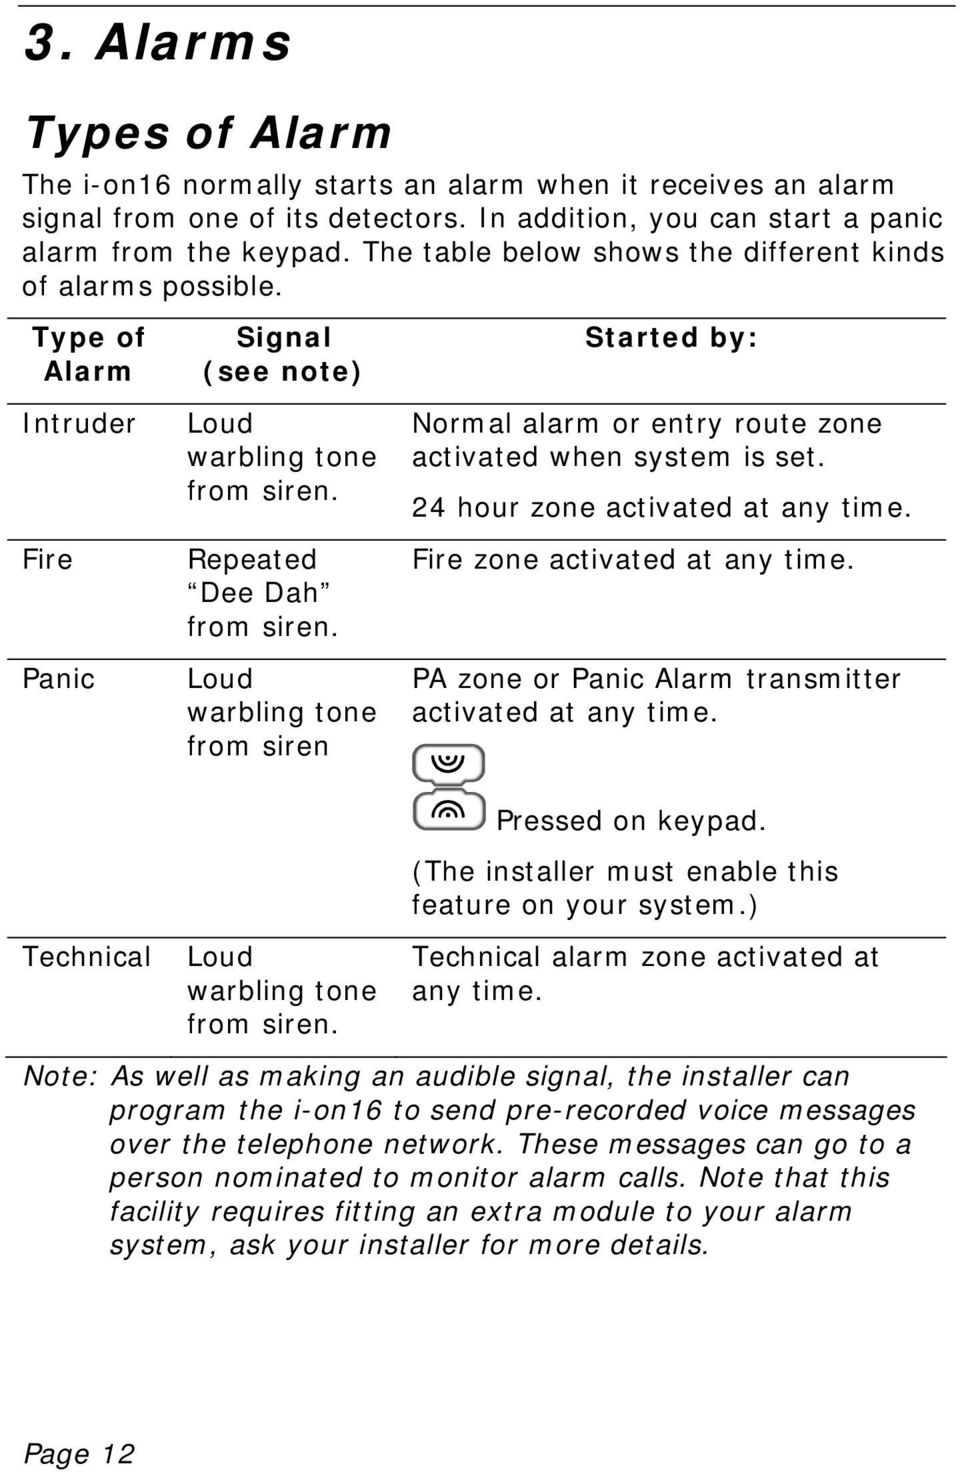 Loud warbling tone from siren Started by: Normal alarm or entry route zone activated when system is set. 24 hour zone activated at any time. Fire zone activated at any time.